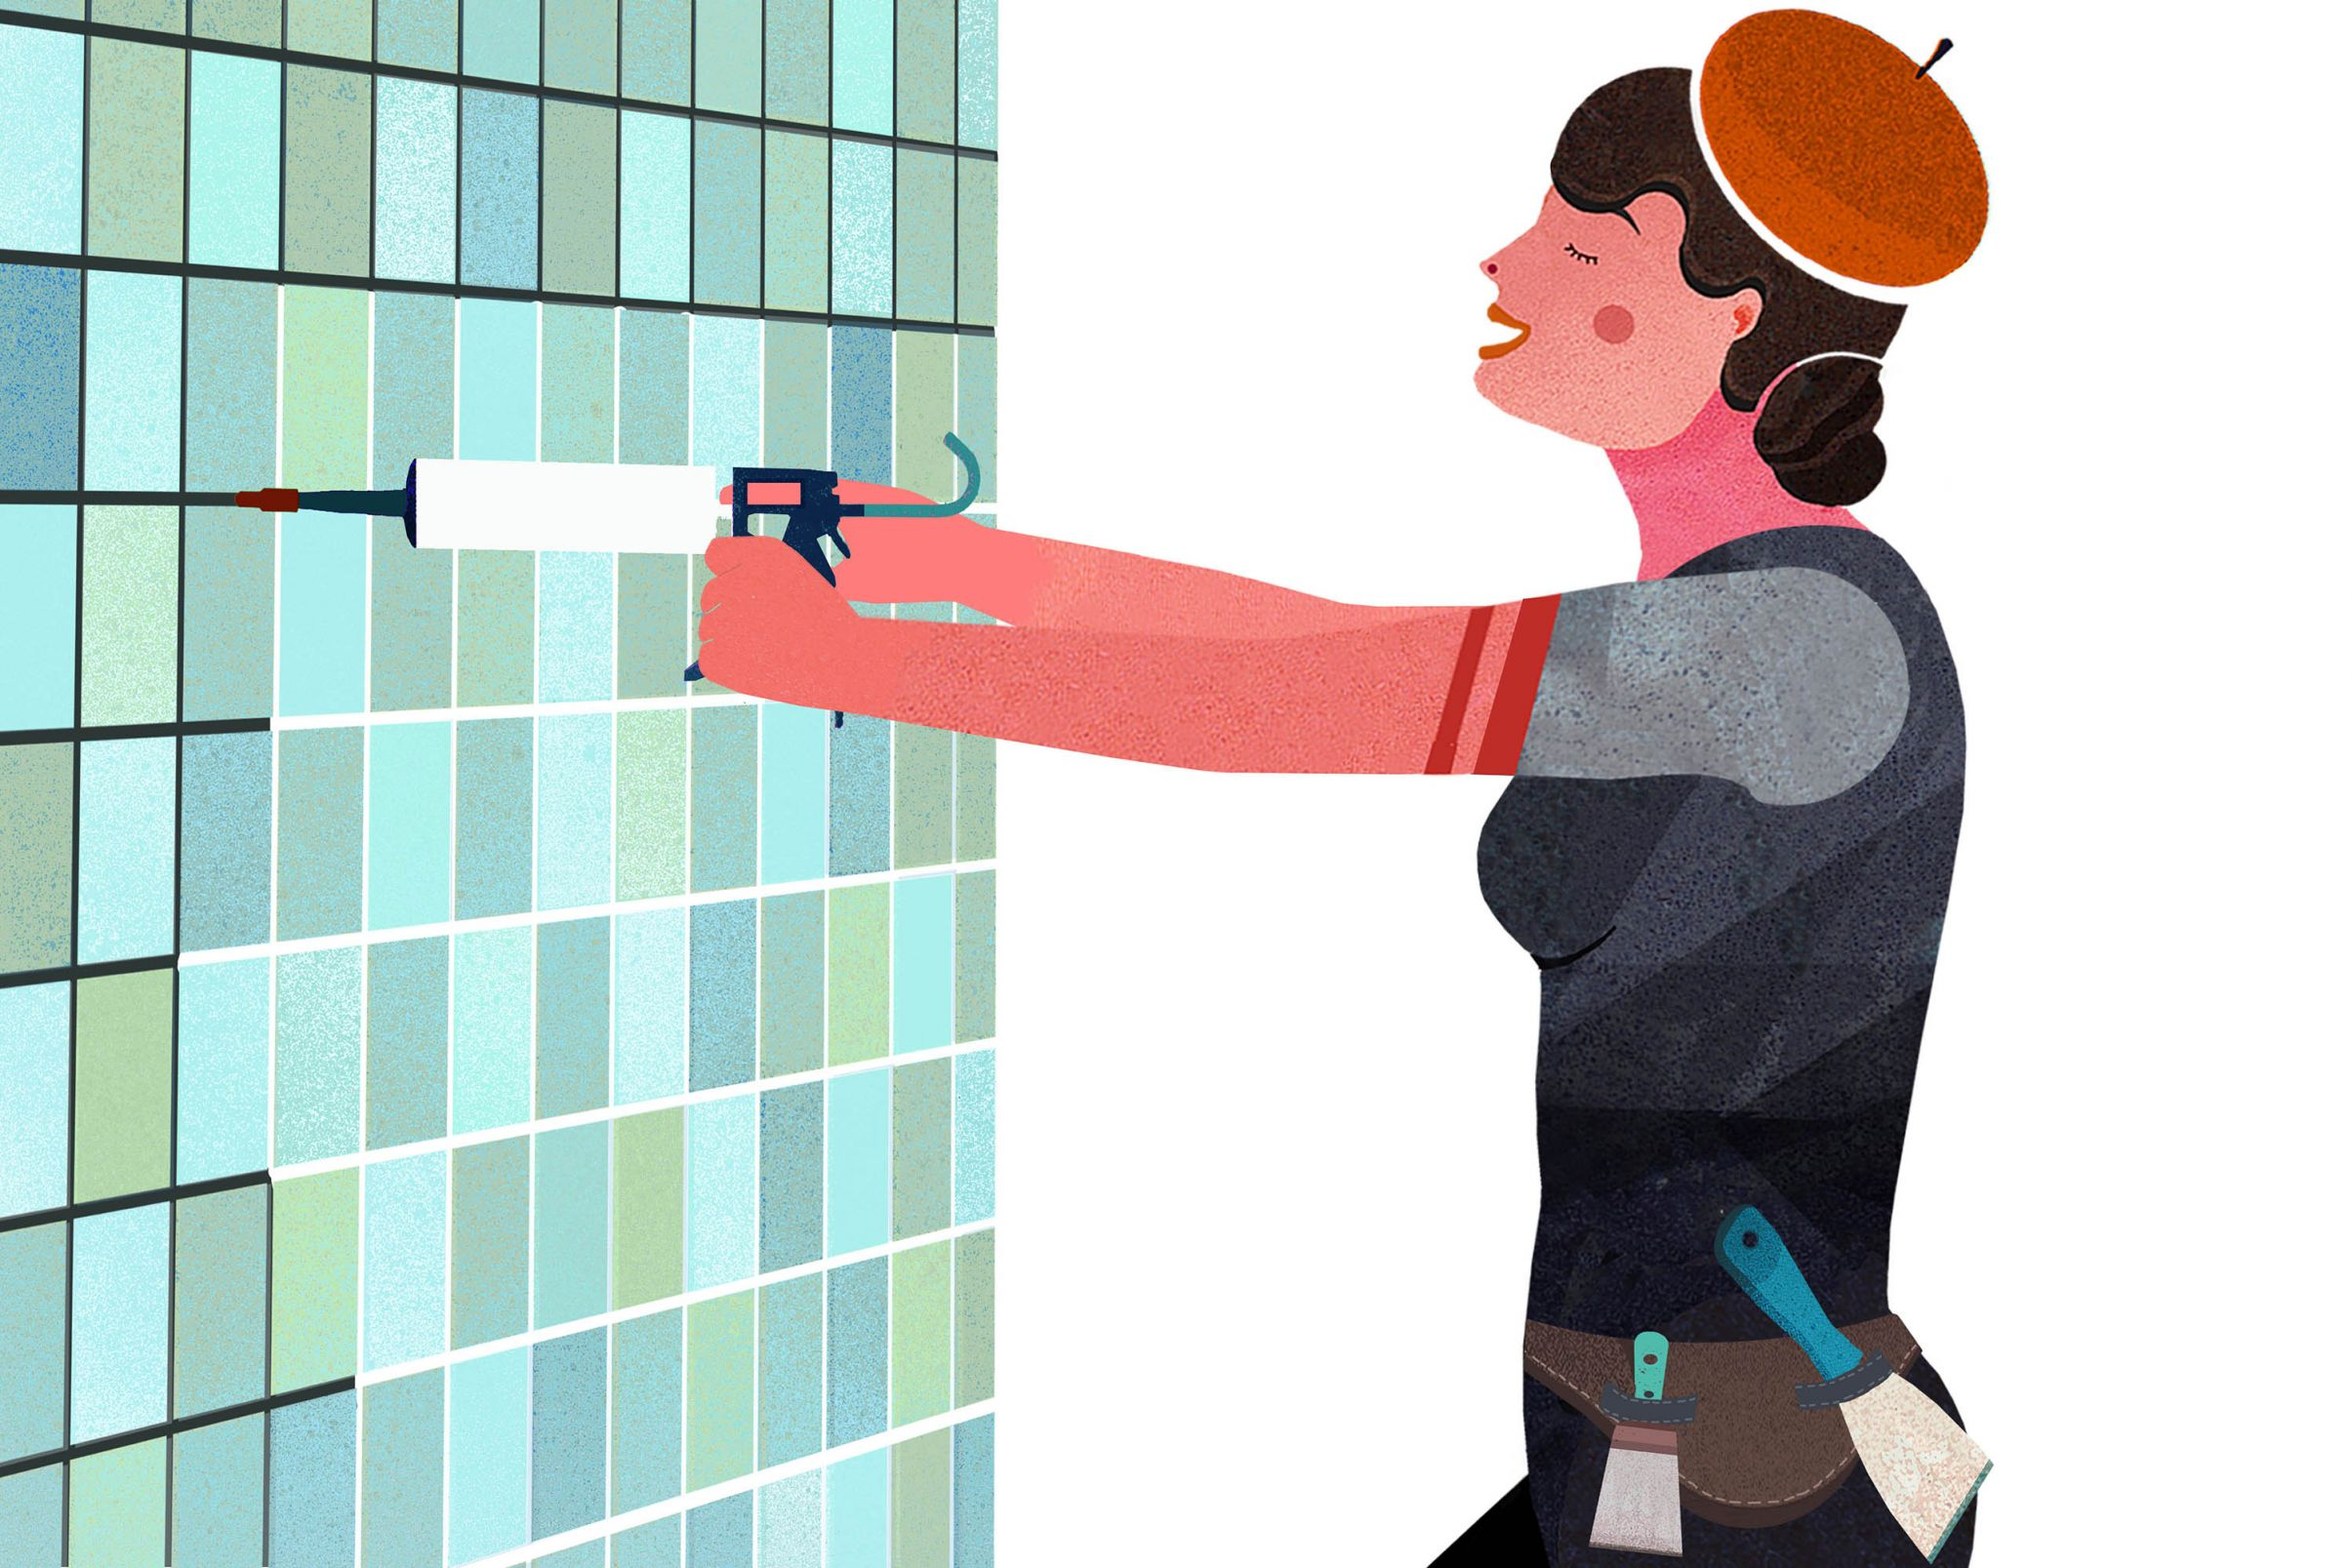 How-to-wallpaper-in-the-bathroom-Filling-in-grouting-levelling-out-the-filler-and-sanding-down-tiles-with-sandpaper